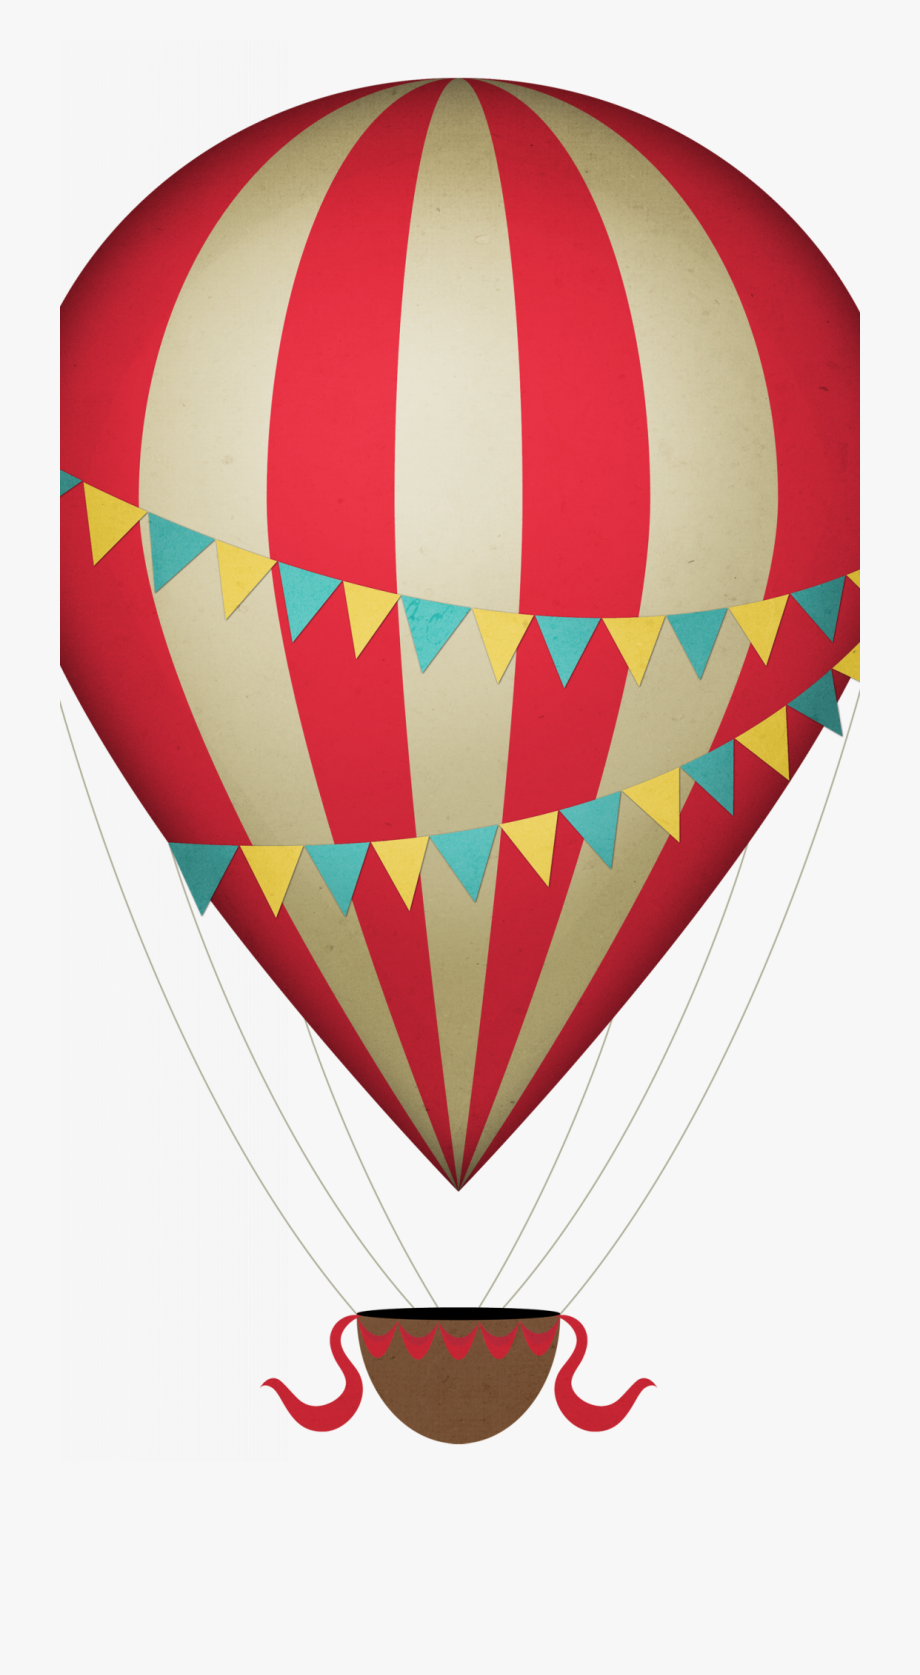 Vintage air balloon clipart free svg library stock Vintage Hot Air Balloon Clipart Cc Vintage Hot Air - Cute ... svg library stock